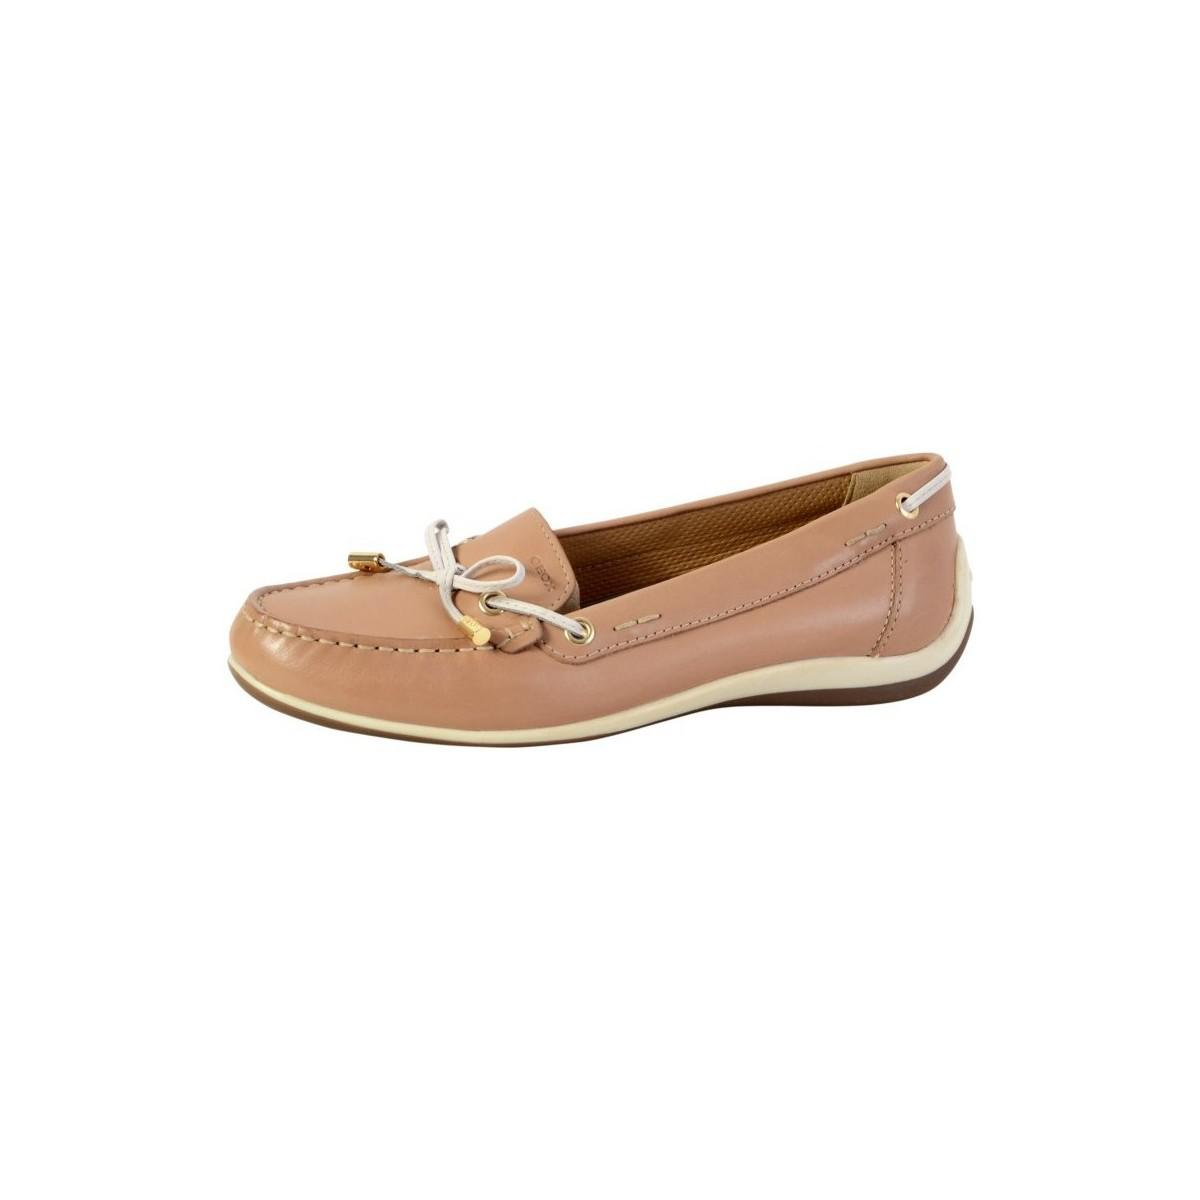 d0dab04e358 Geox Shoes Yuki Lt Taupe D6455a 00043 C6738 Women s Loafers   Casual ...